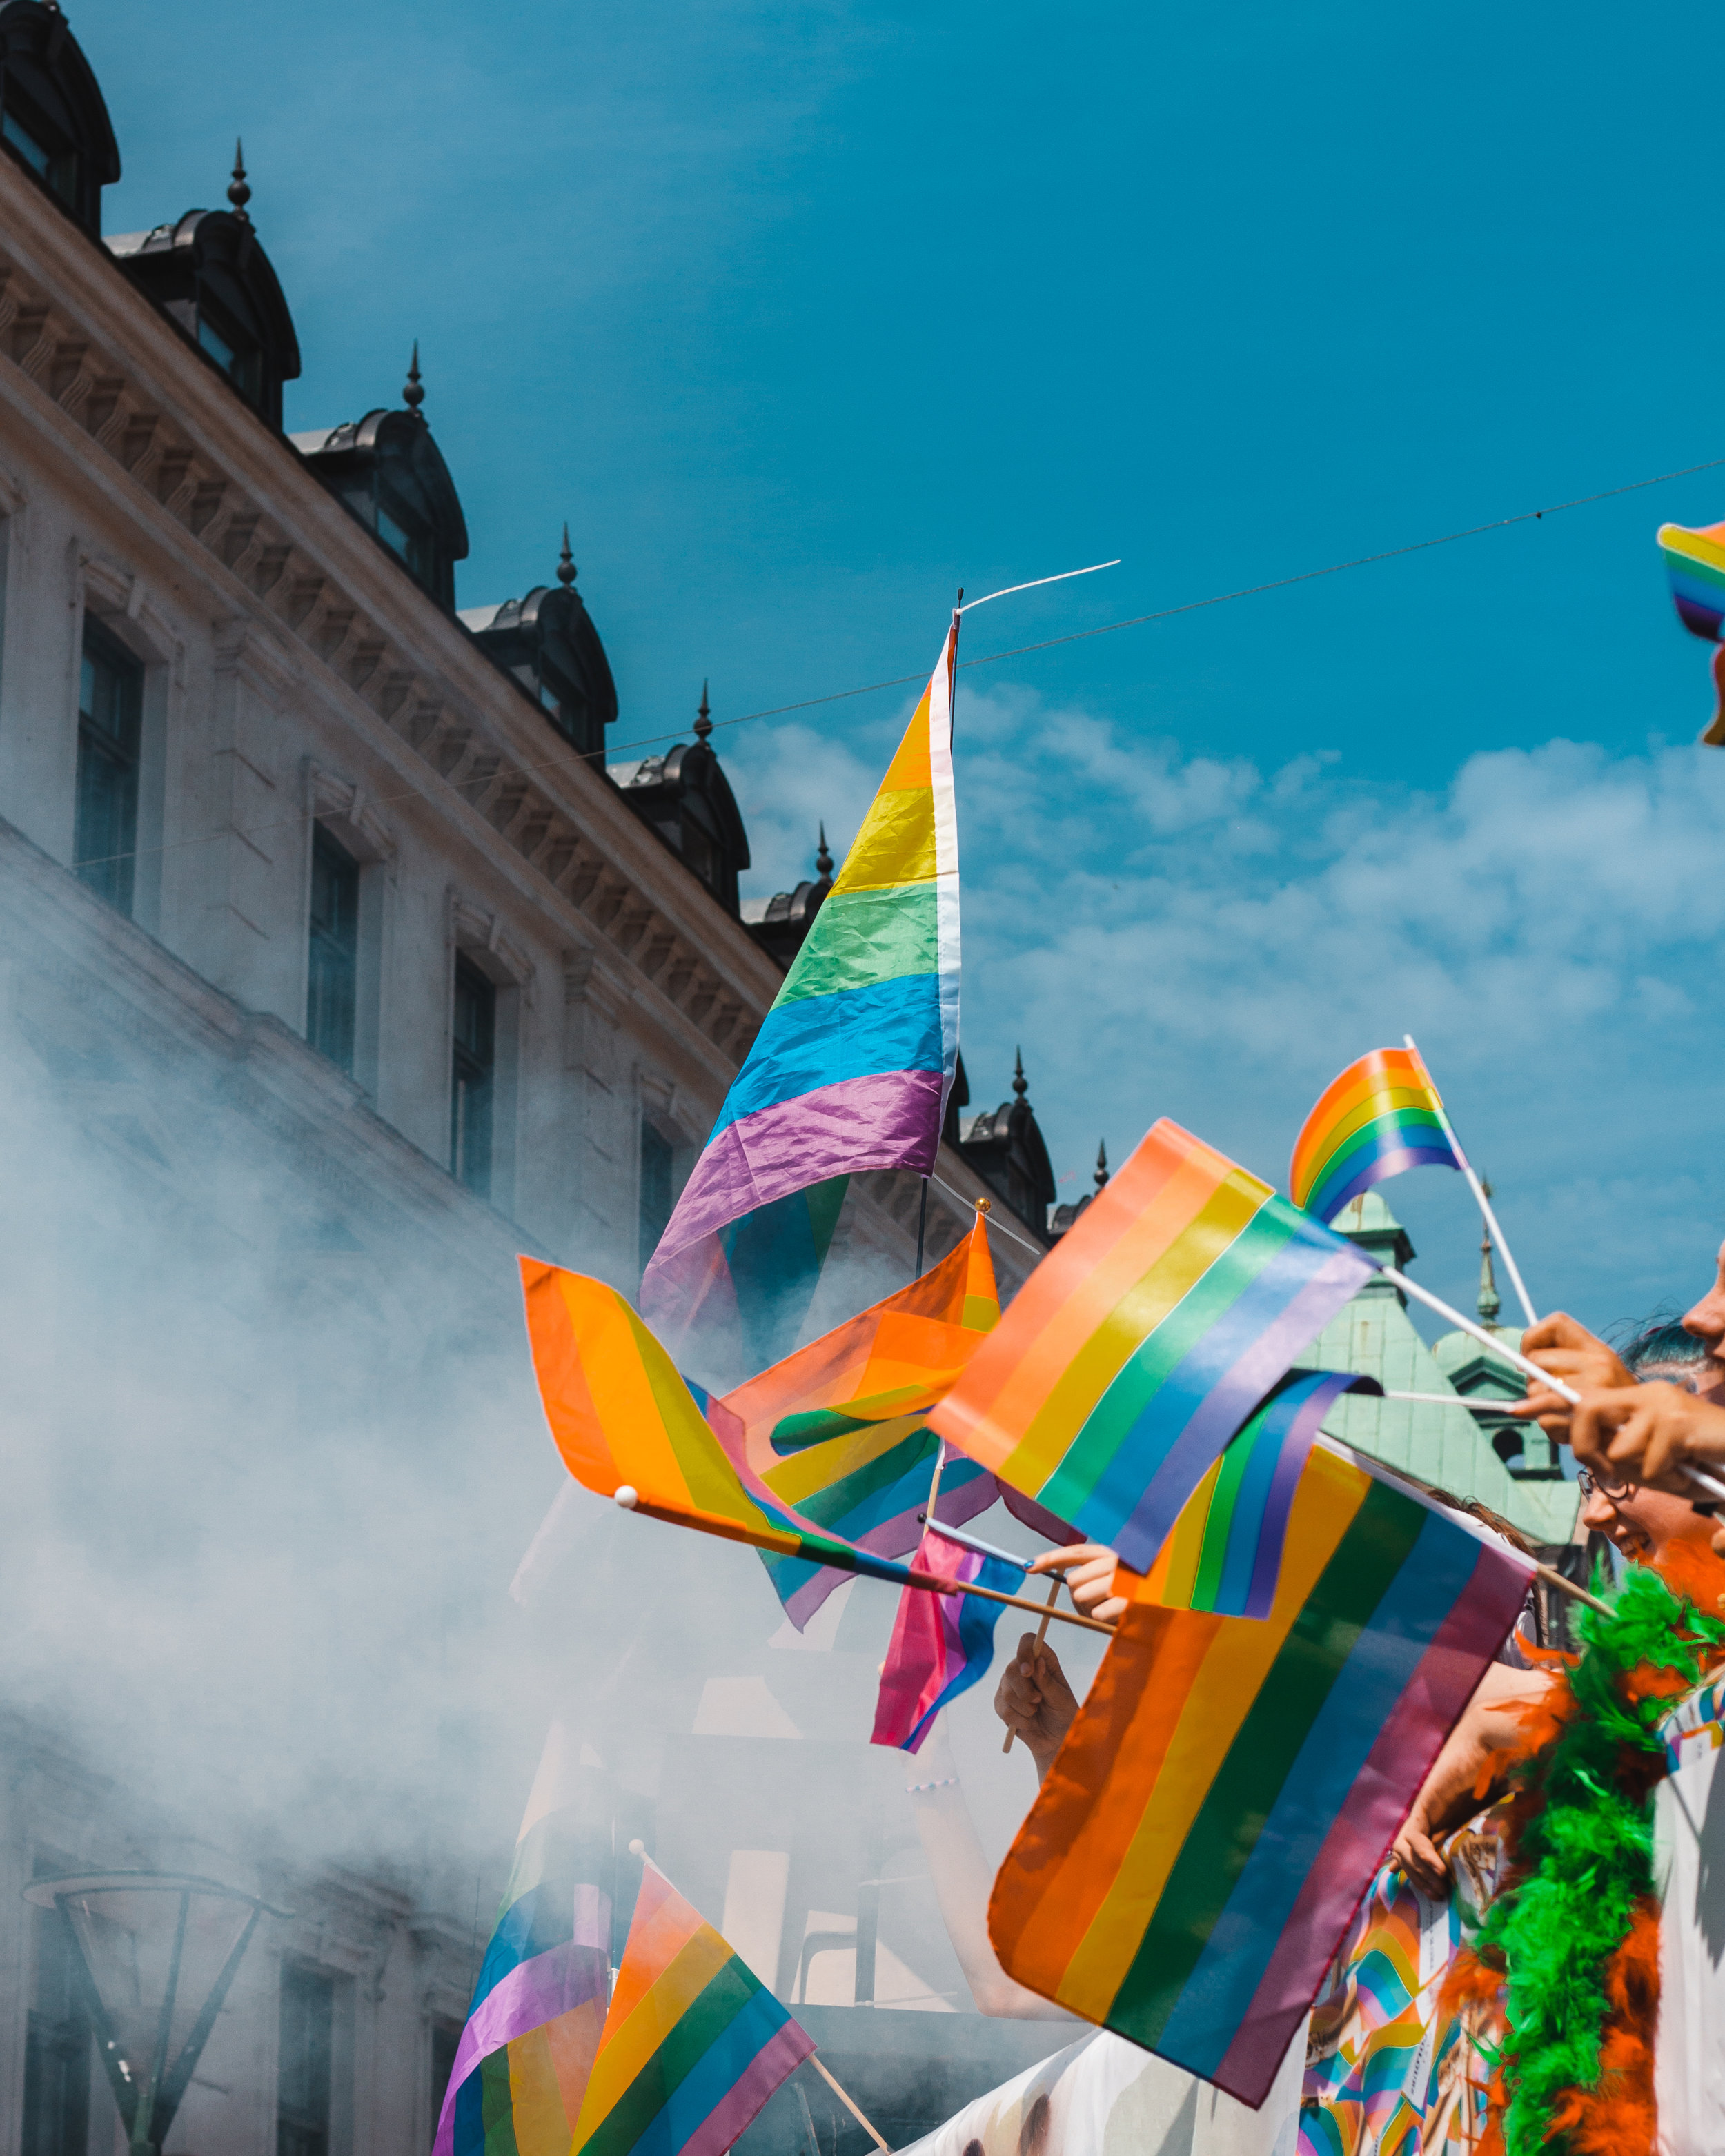 Going global, unique LGBT+ approaches in hostile countries - employers try to support LGBT rights around the globe